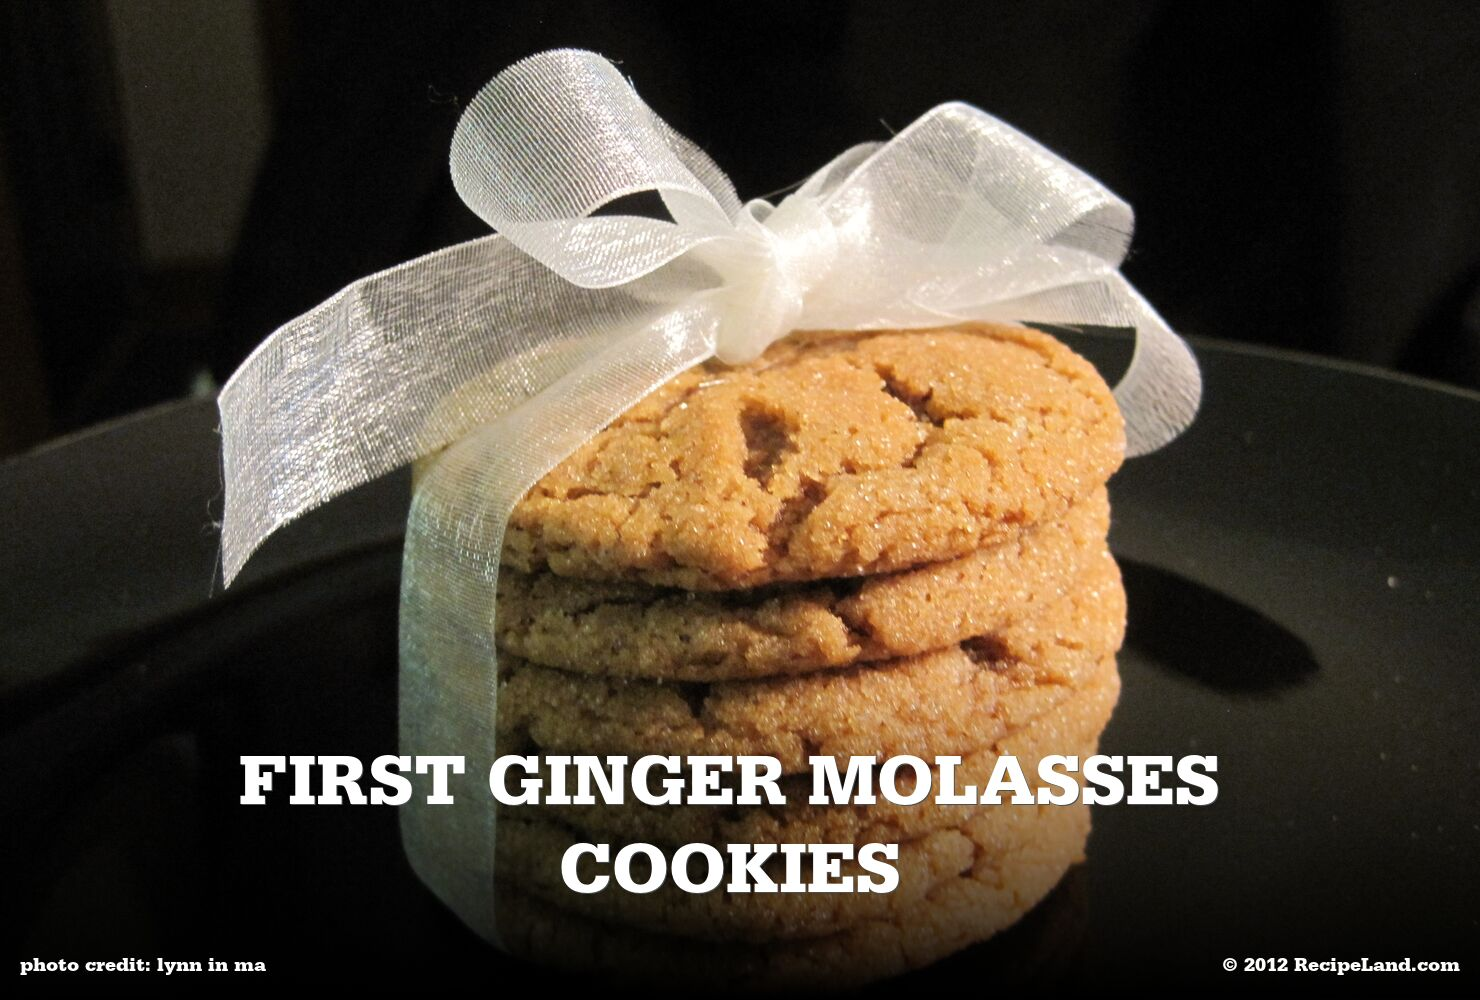 First Ginger Molasses Cookies